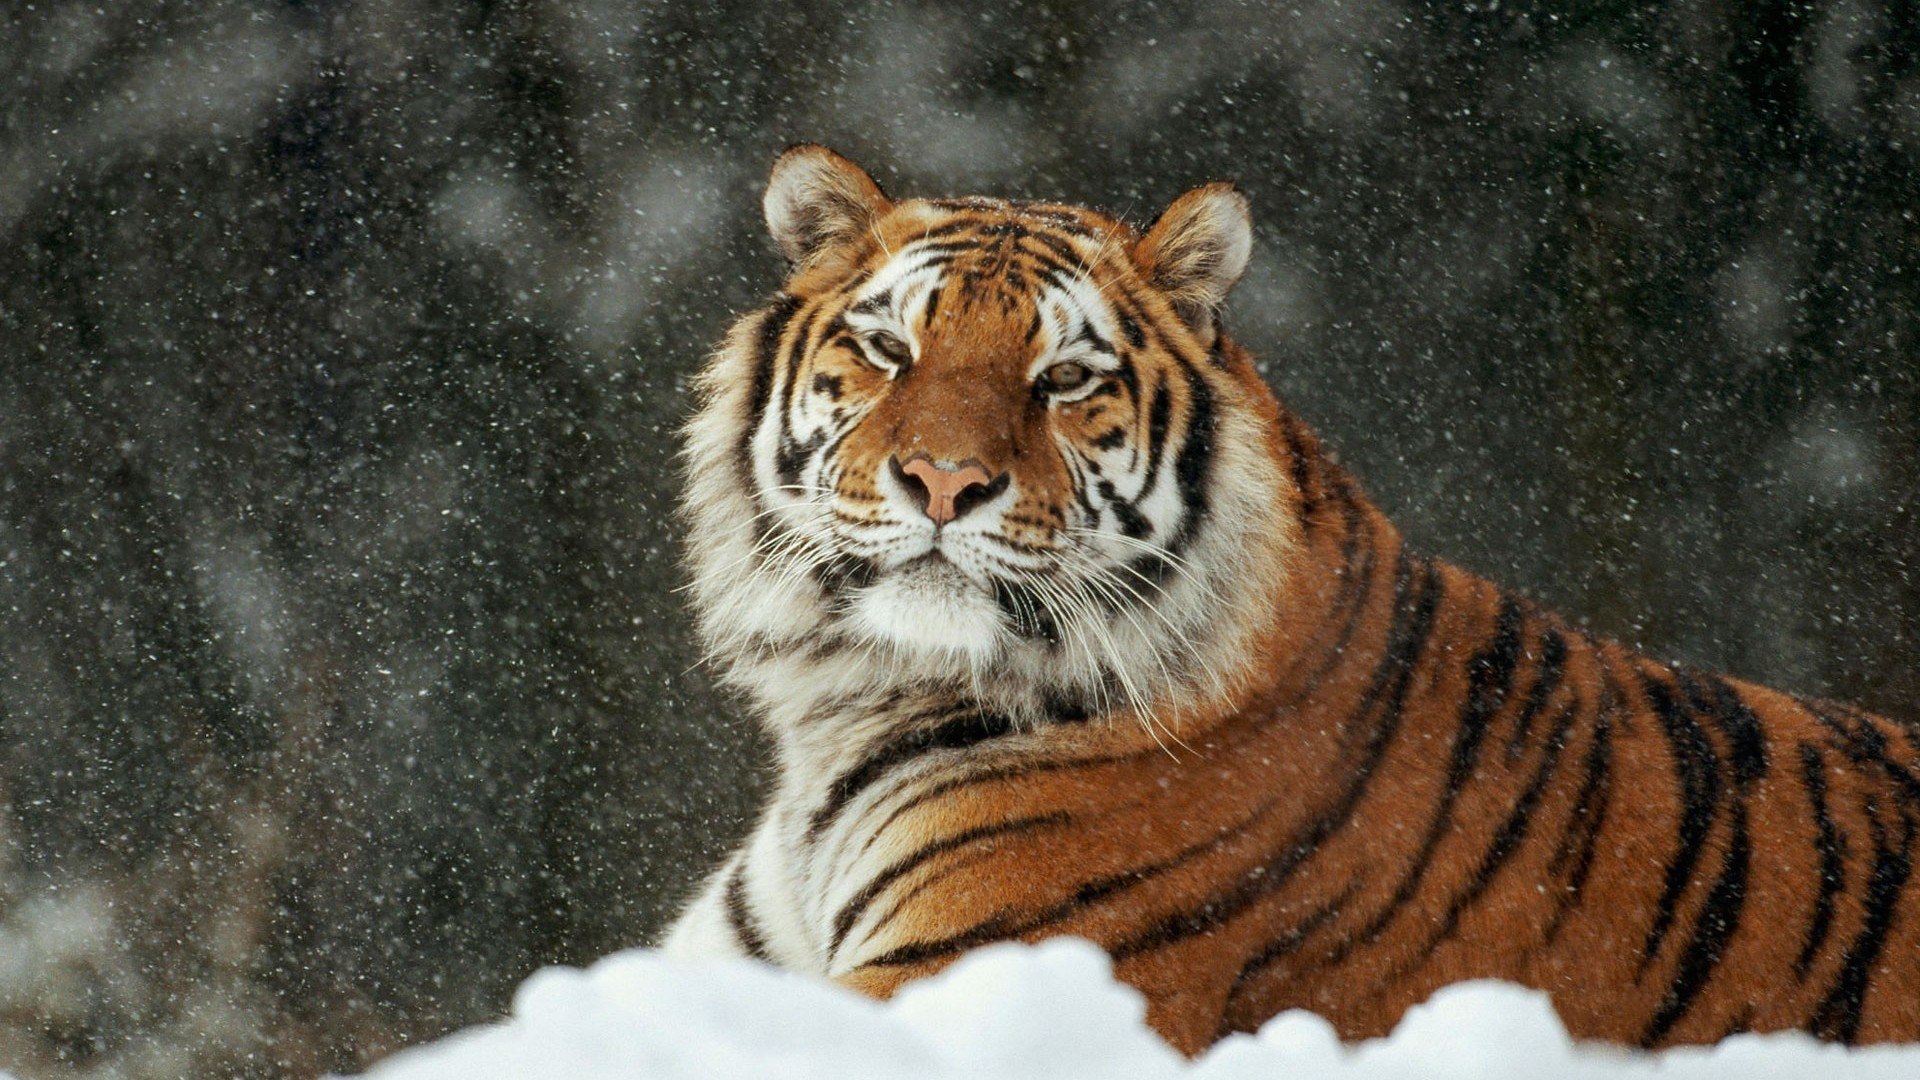 Tiger Image Wallpapers Group (86+)